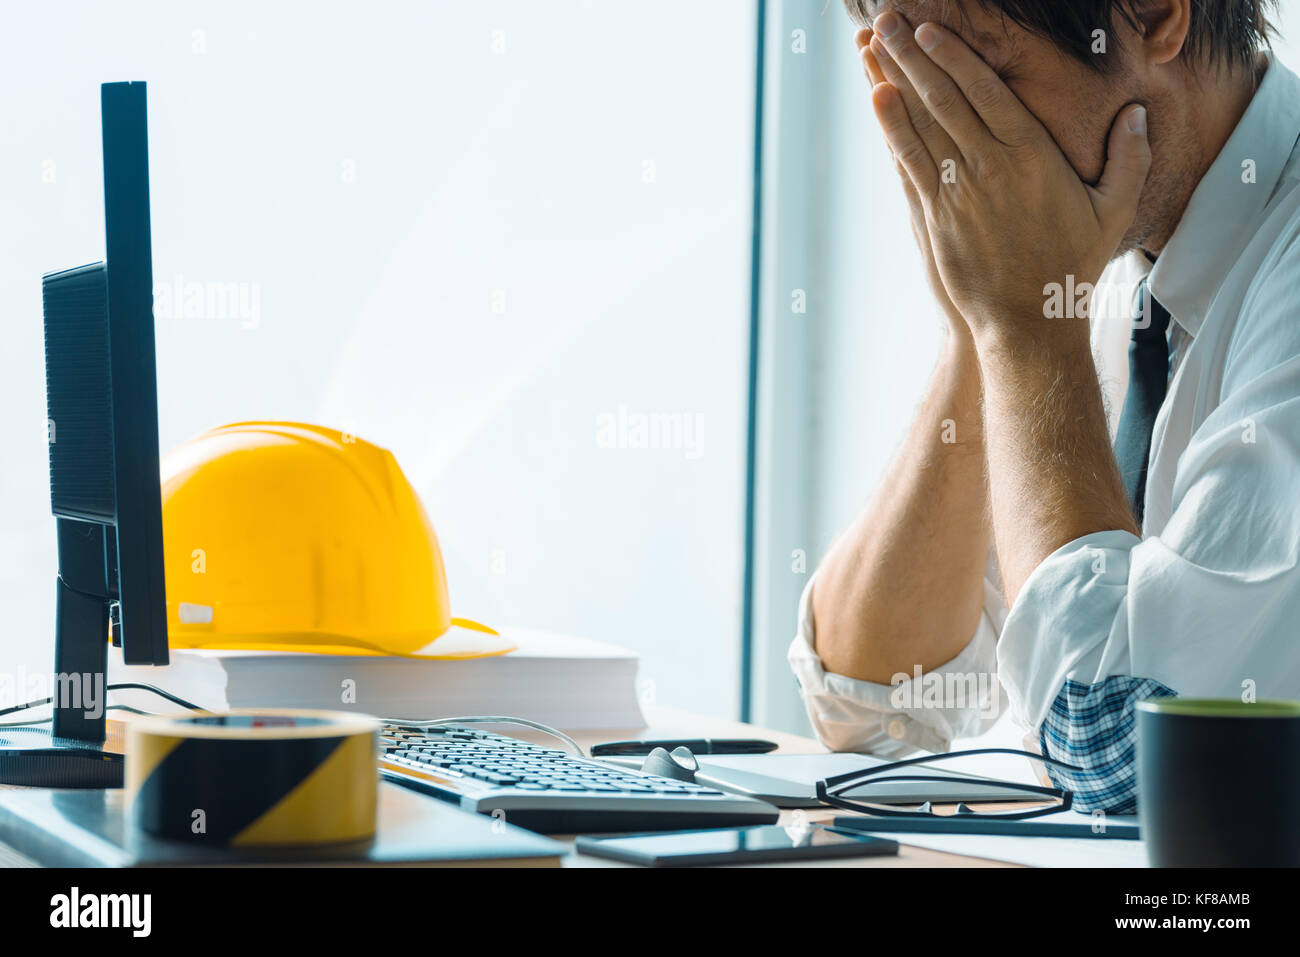 Worried interior design professional working in architecture studio office - Stock Image